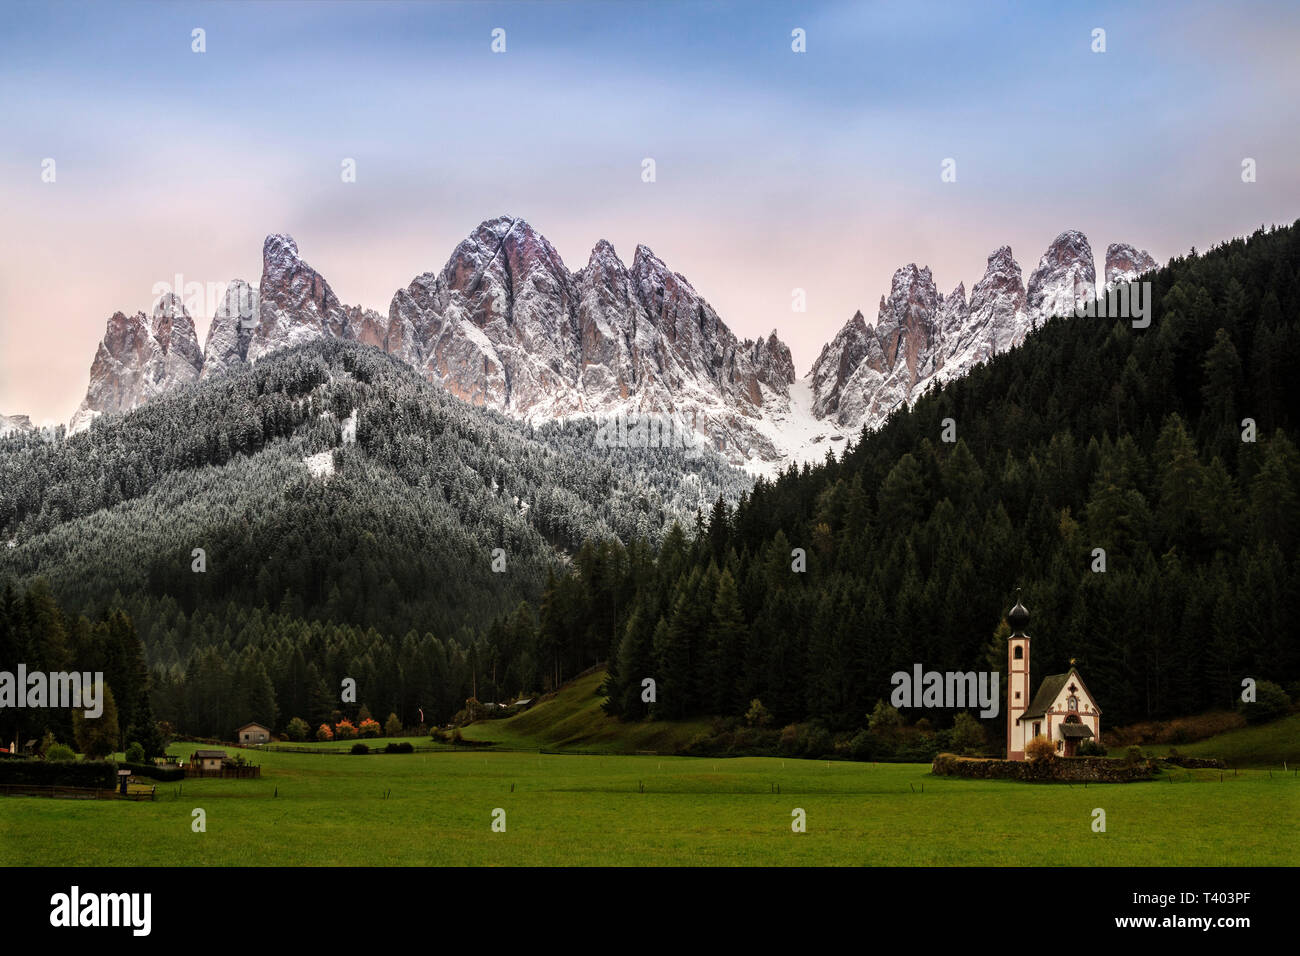 The famous chappel of Sankt Johann in Ranui in the val di Funes (Dolomites) with the jagge peaks of the Odle range in the background - Stock Image